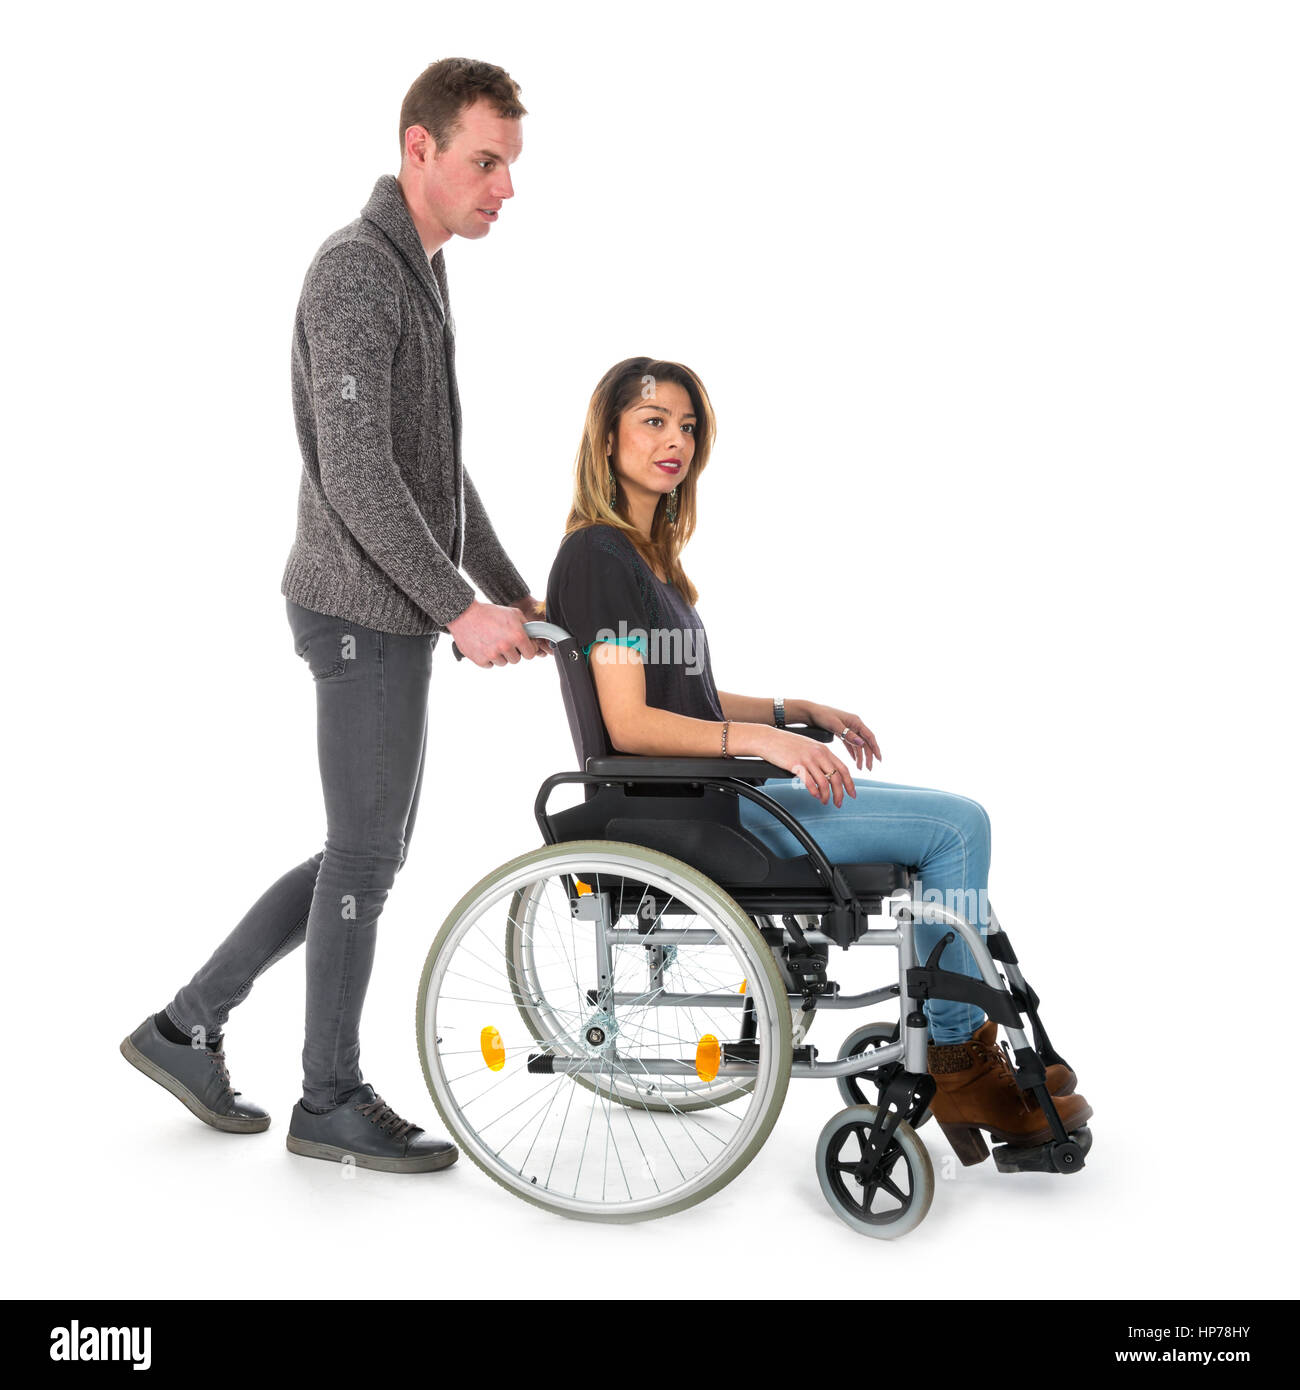 Man Pushing Woman In A Wheelchair Isolated On White